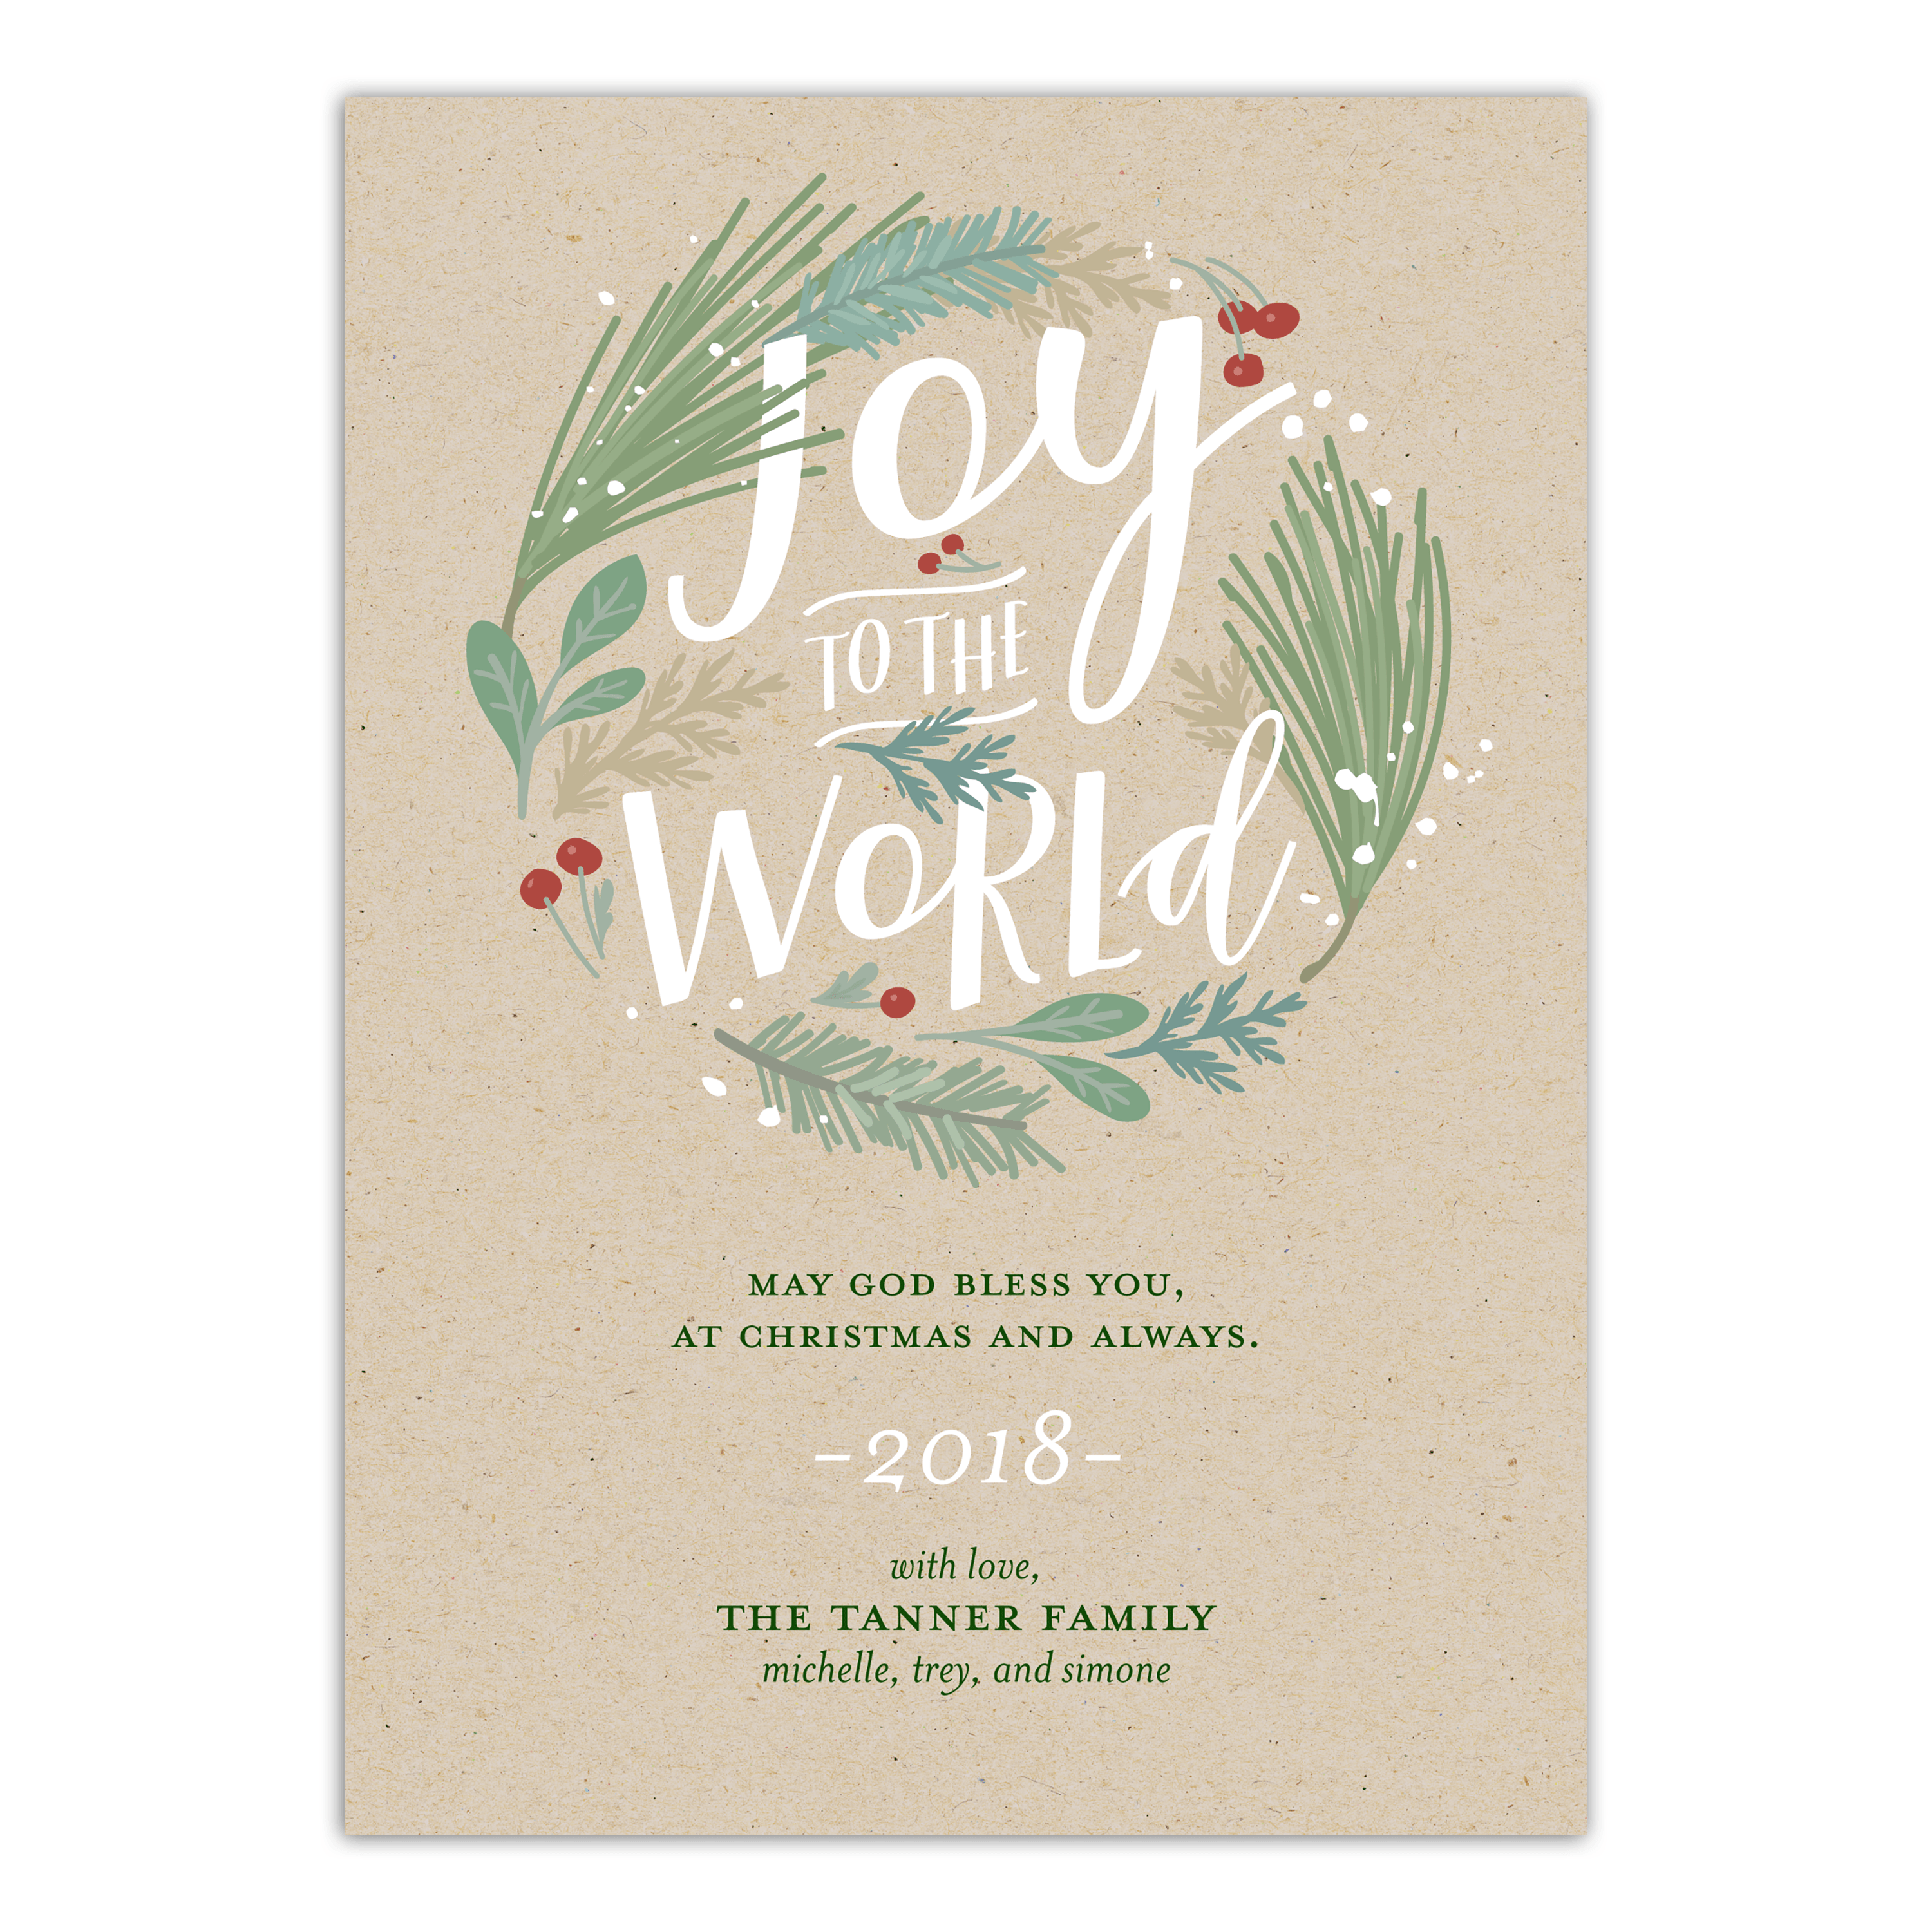 Personalized Holiday Non-Photo Card - Great Joy